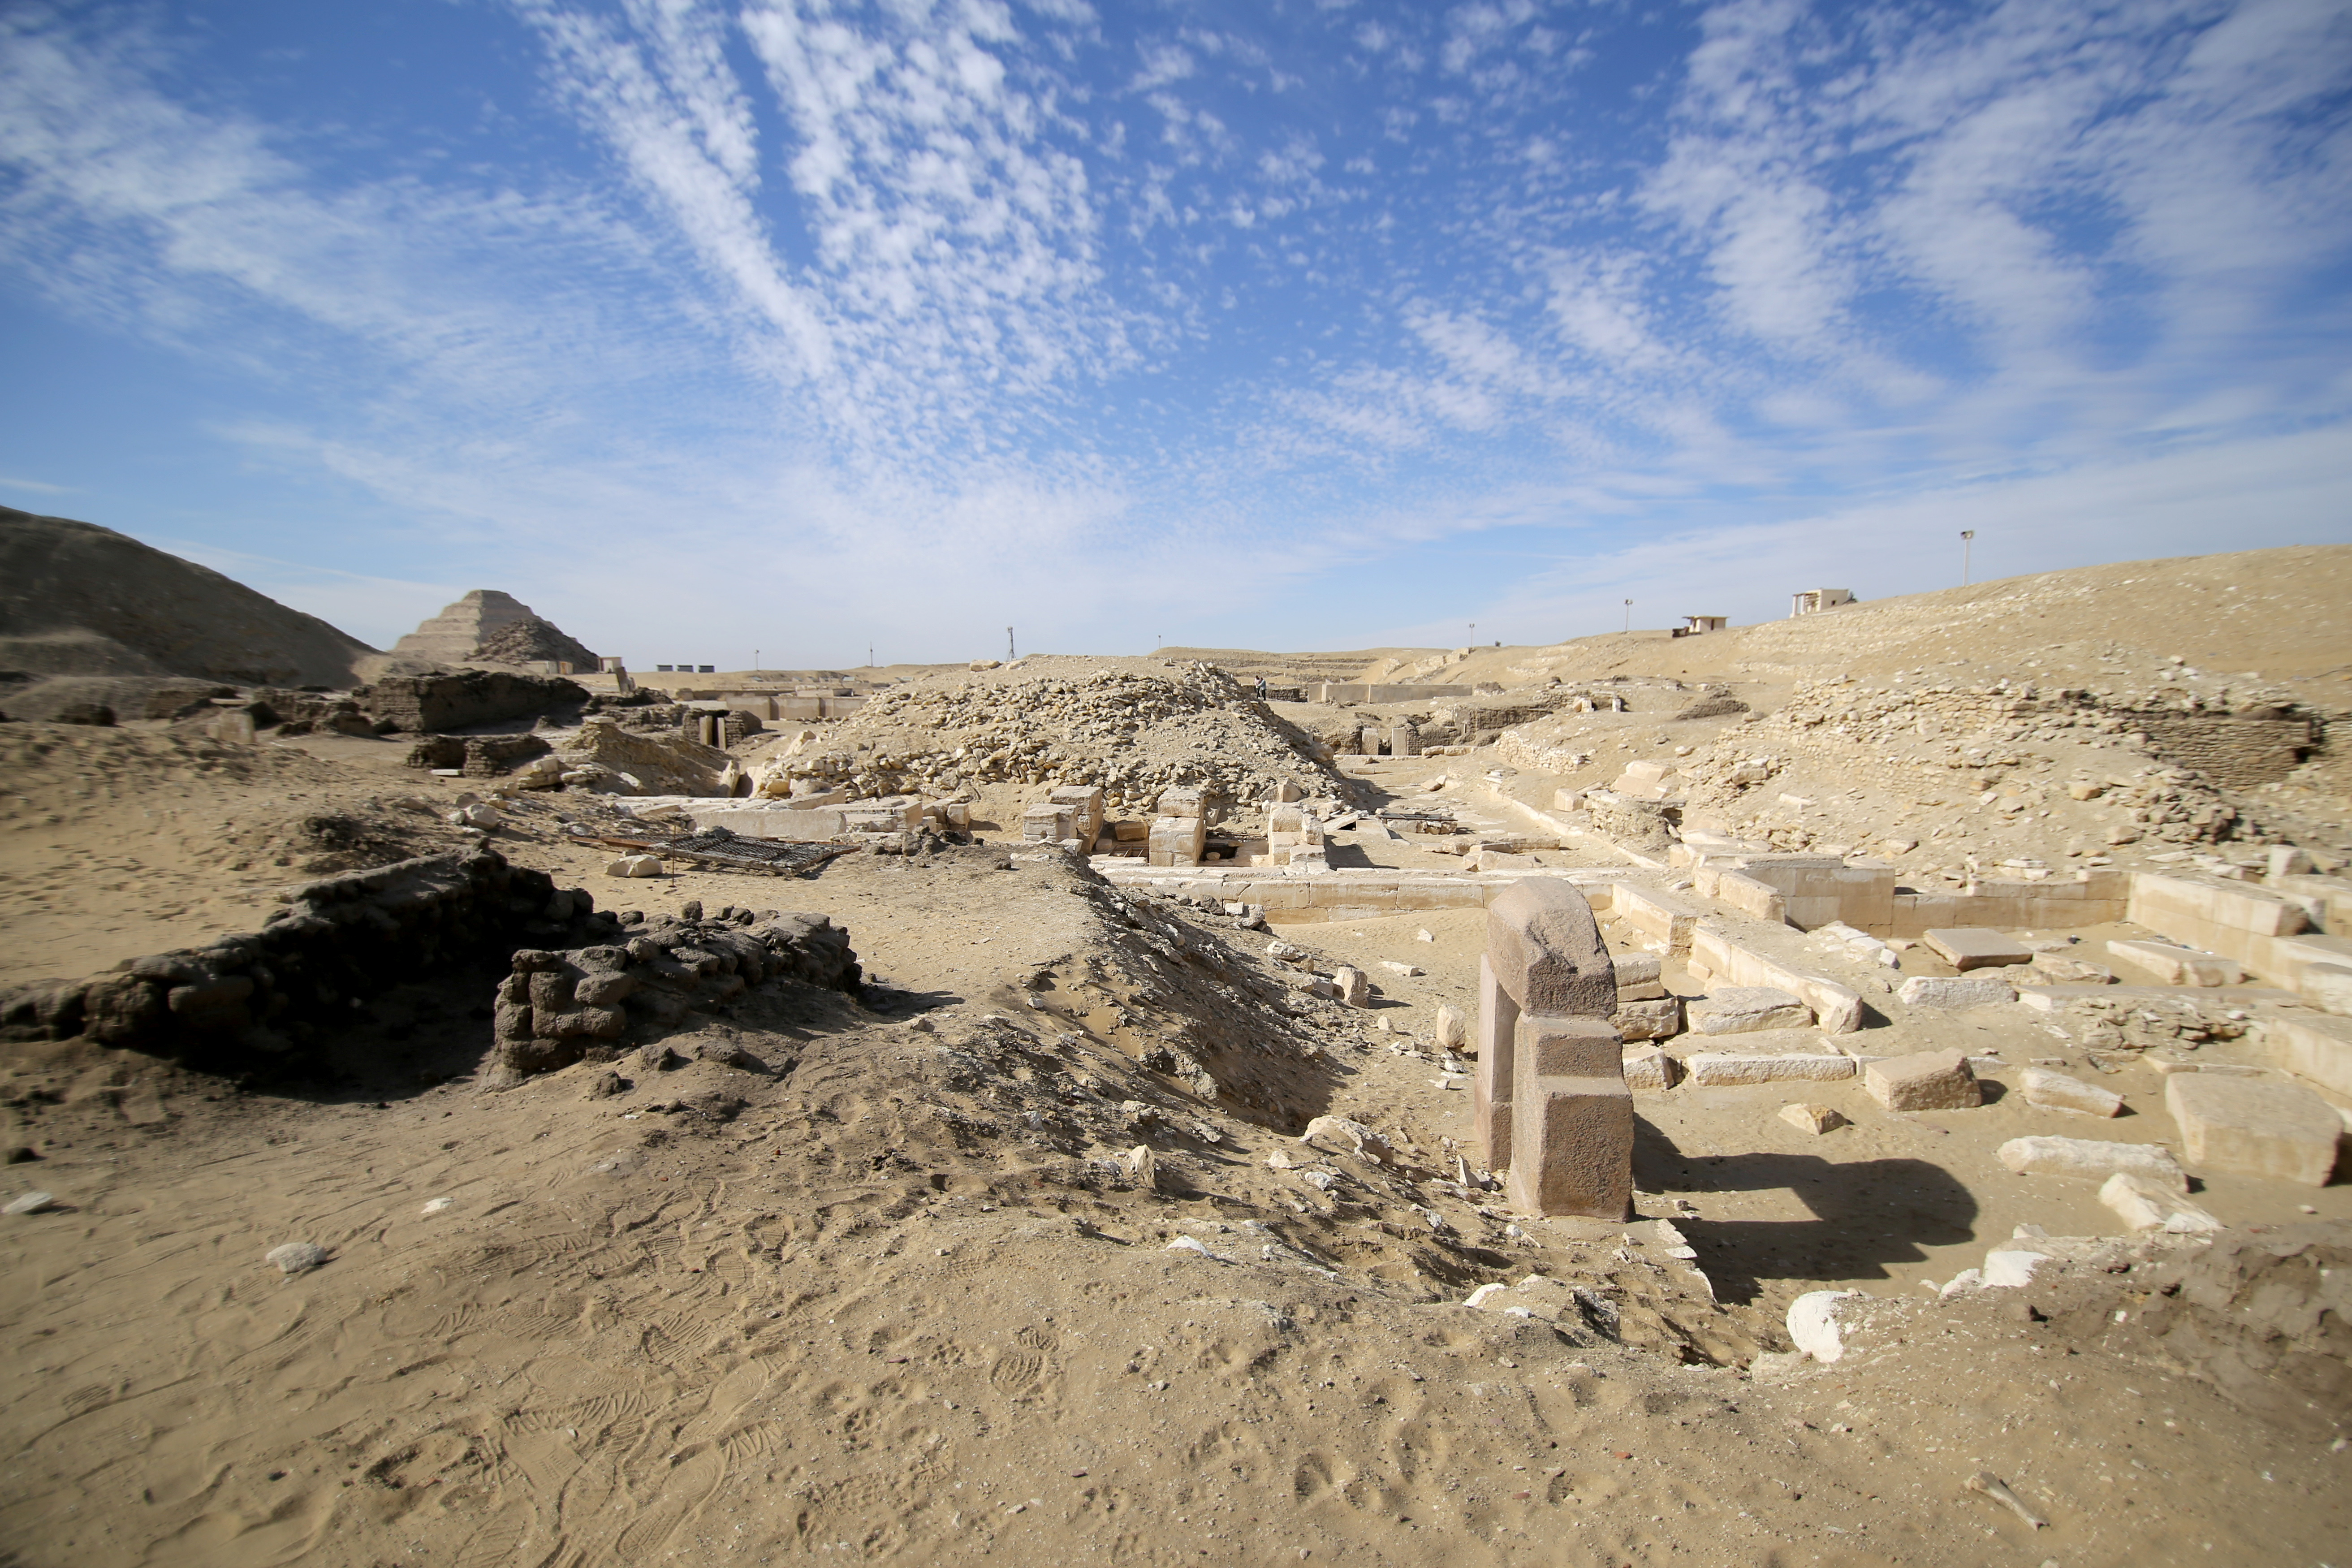 A view shows the site of a recent discovery at the Saqqara necropolis south of Cairo, Egypt January 17, 2021. REUTERS/Hanaa Habib/File Photo